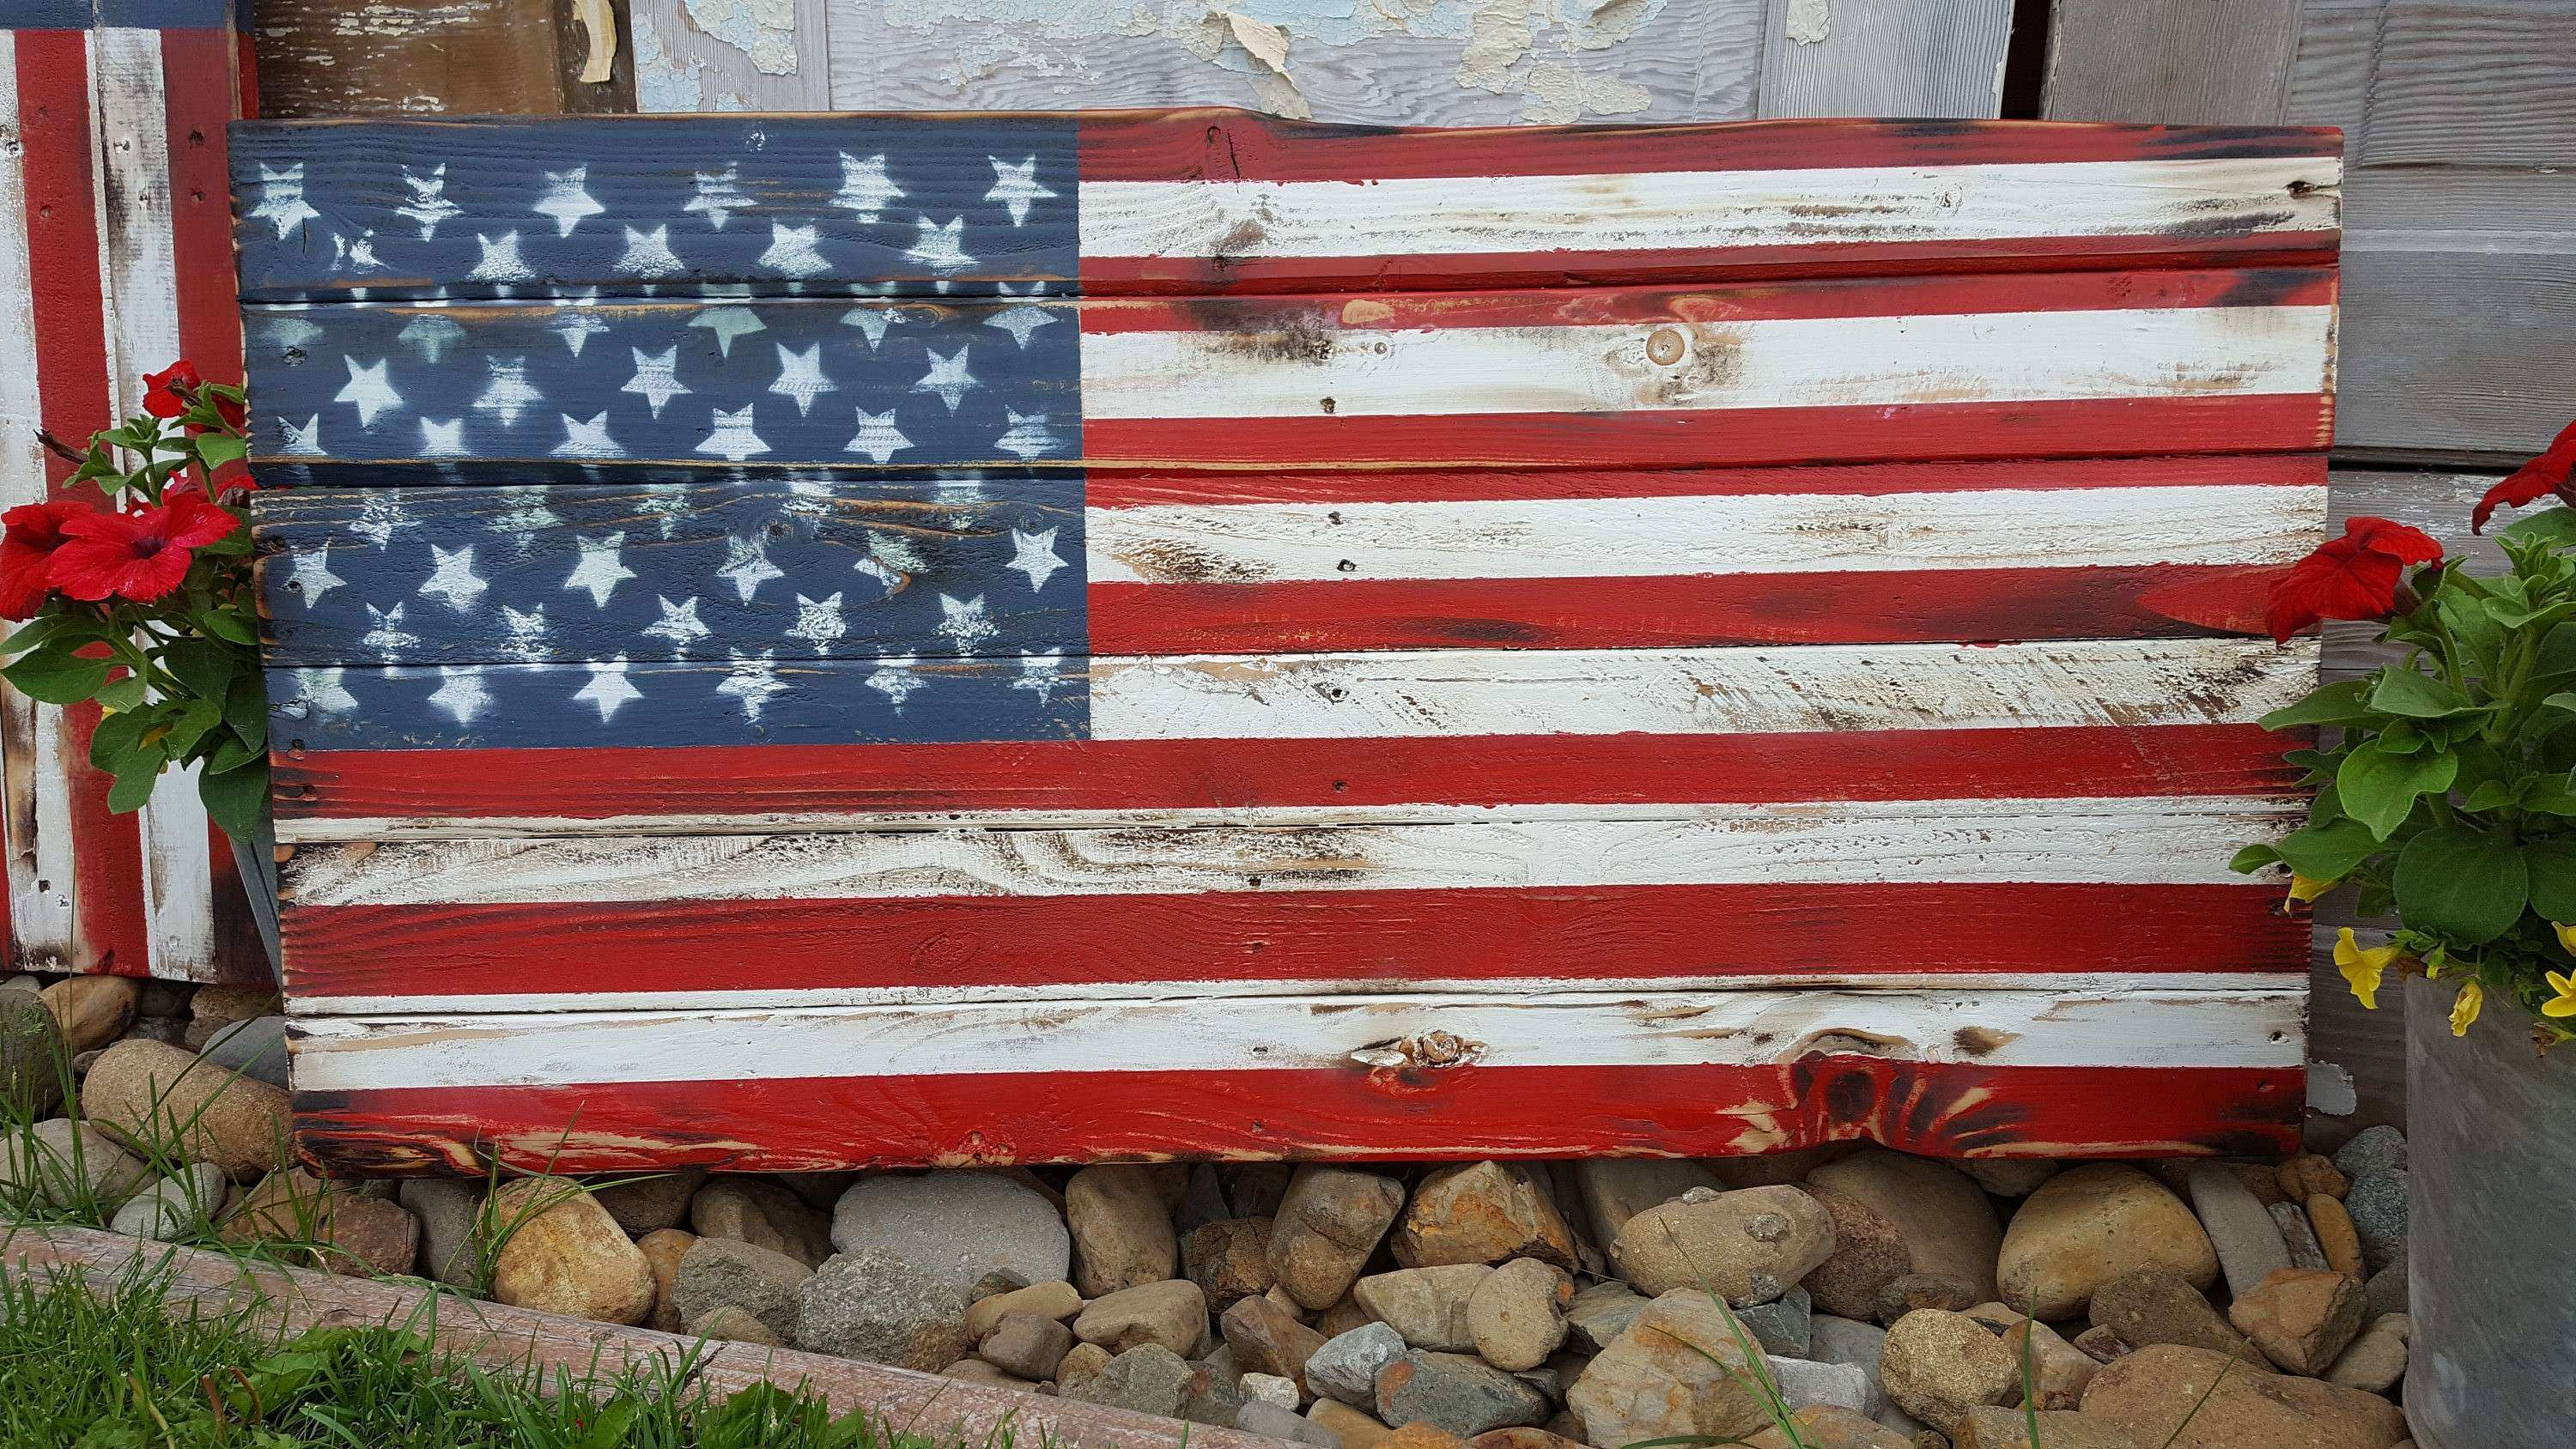 Free Download Image Unique Rustic American Flag Wall Art 650 366